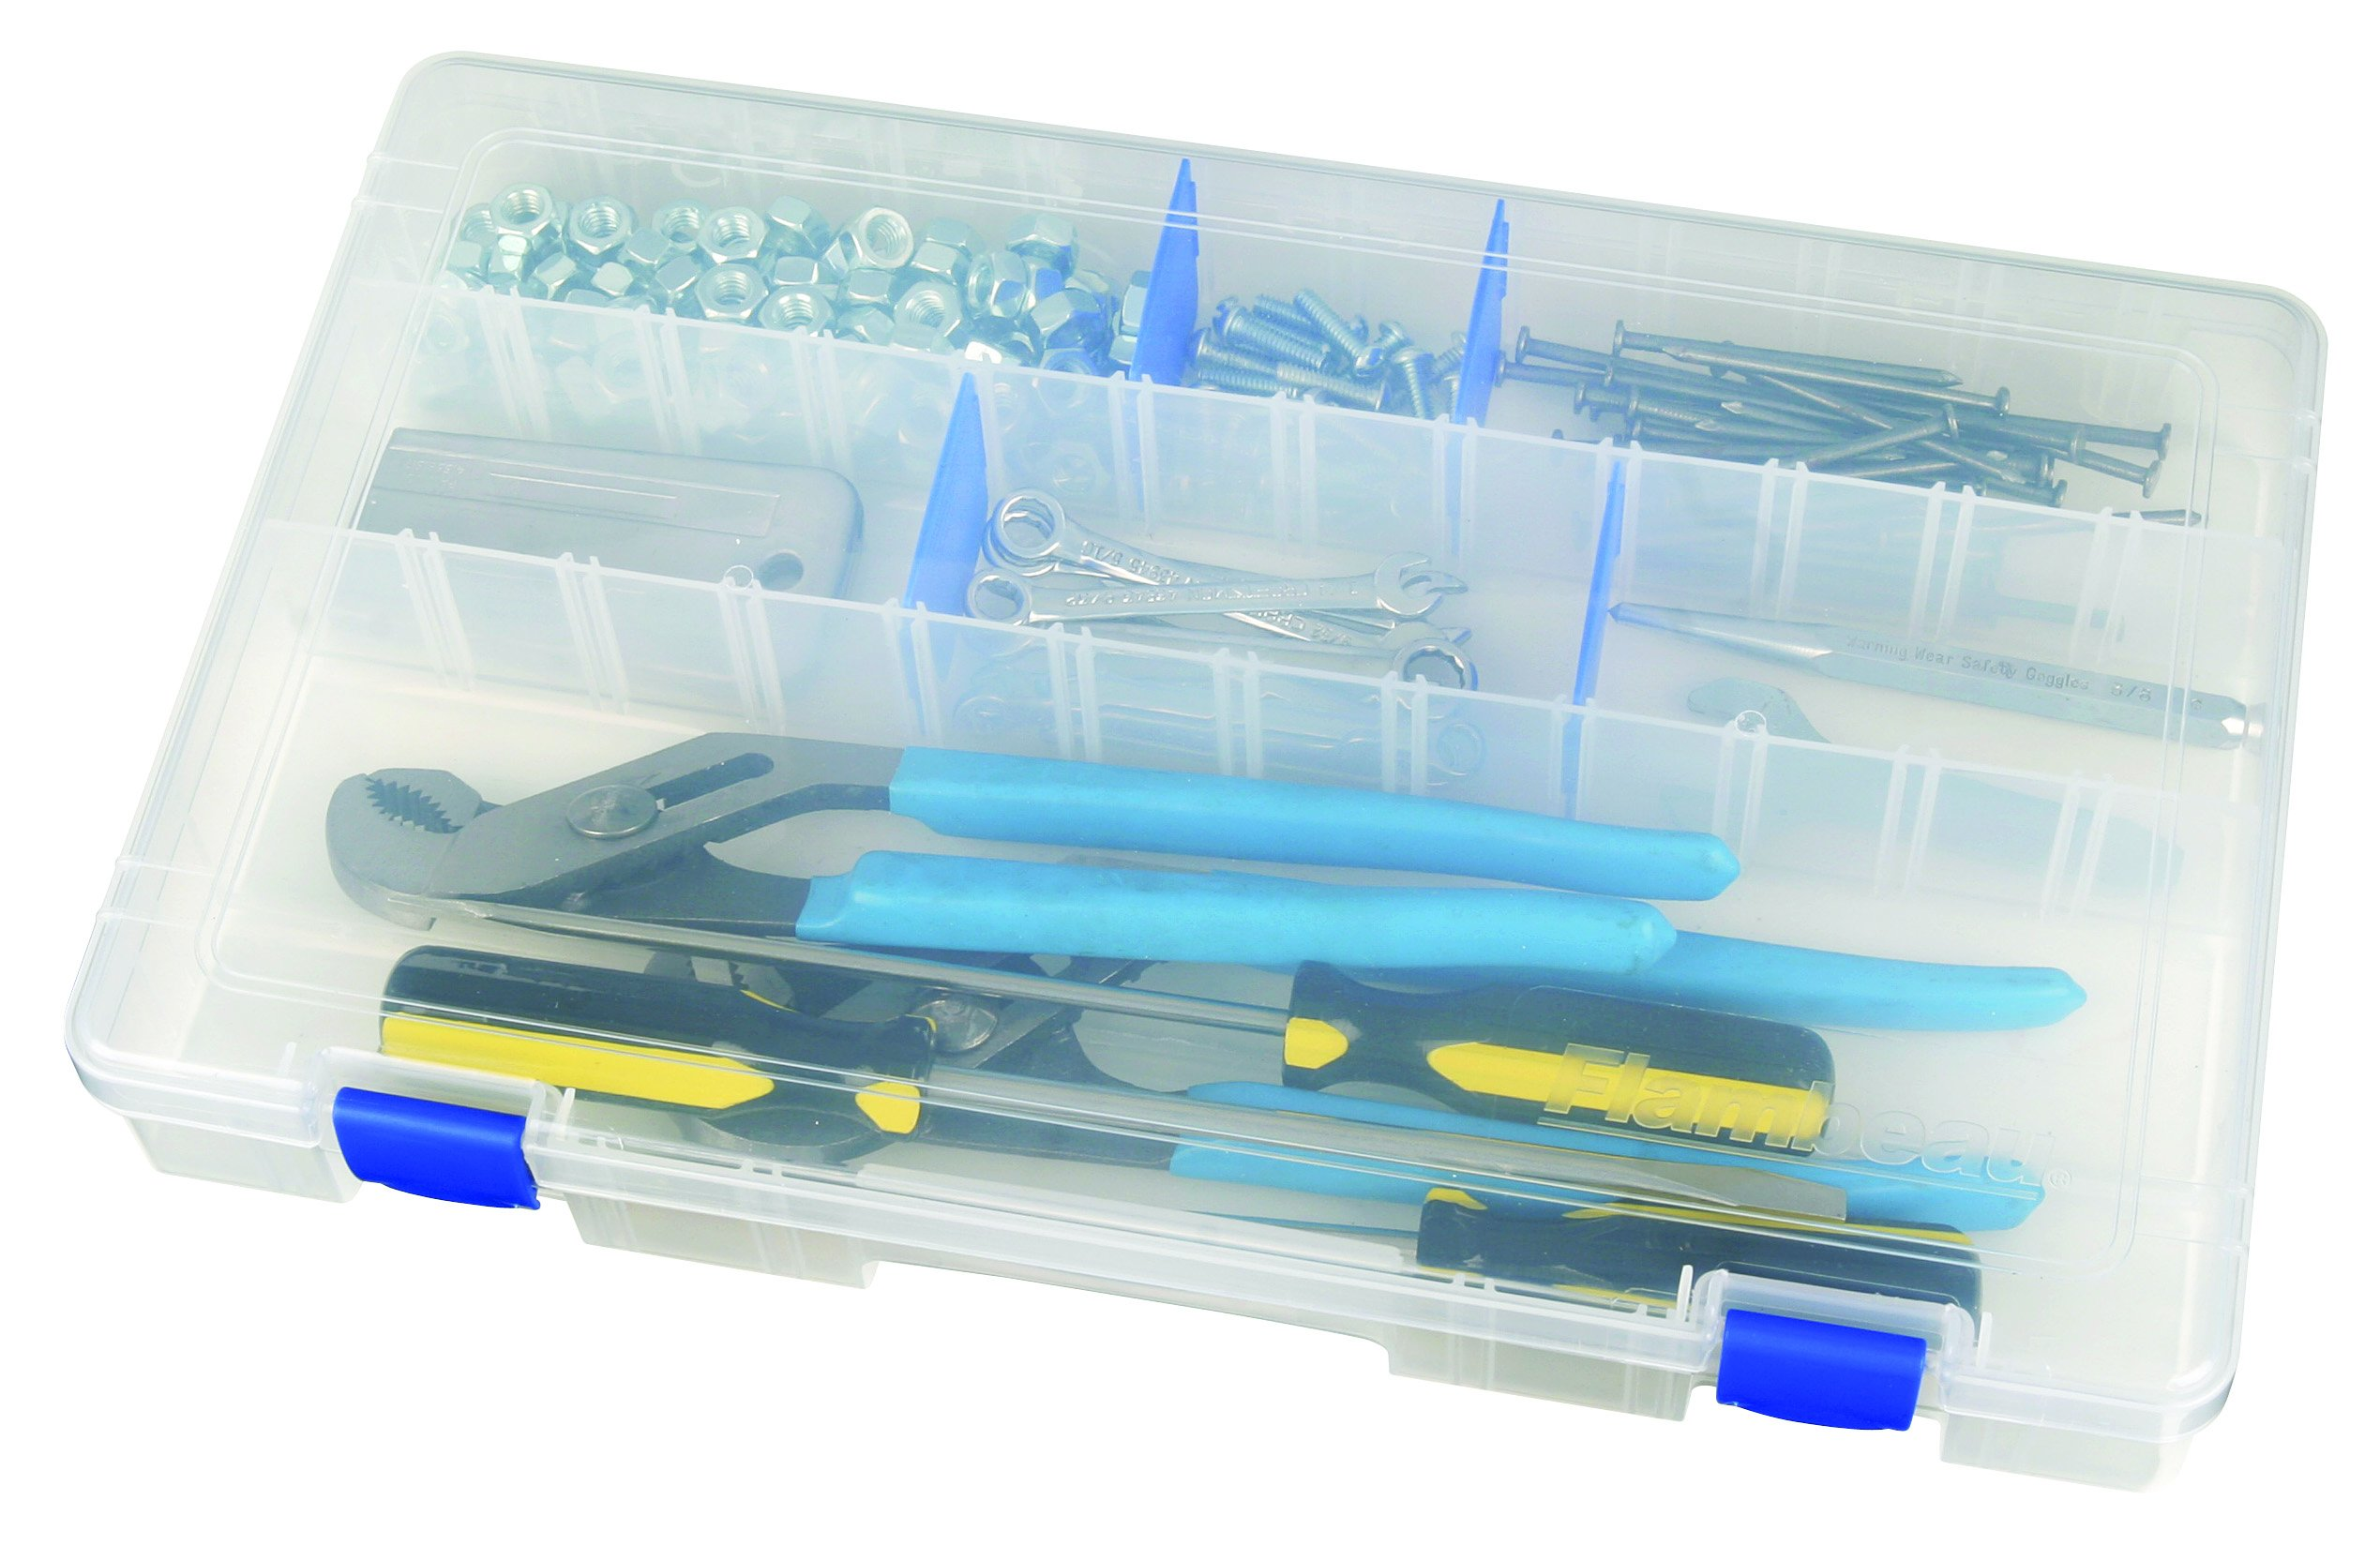 Flambeau Tackle Tuff Tainer Tackle Station with 3 Fixed Compartment (Clear, 16.5x9x1.5-Inch)